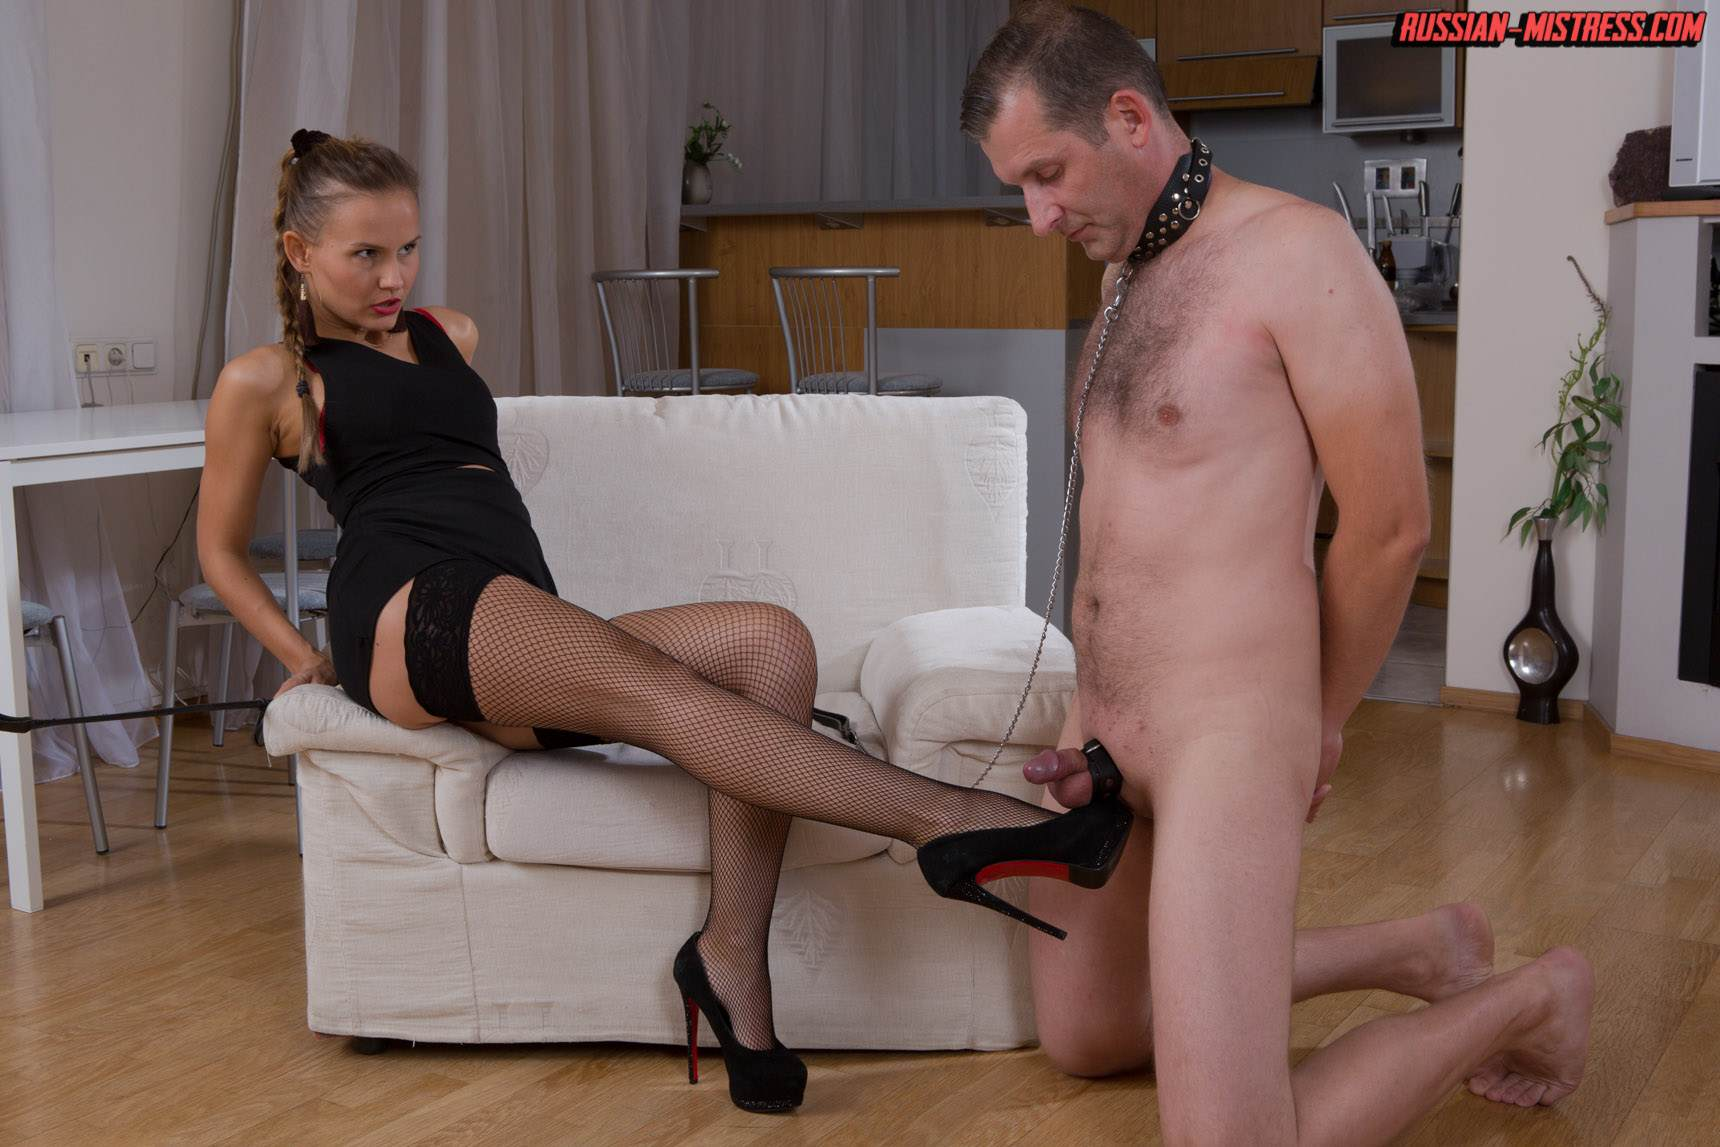 Picture #5 of Mistress is keeping slave motivated for legs worship with harsh whip lashes and then rewards him with deep anal strap-on penetration